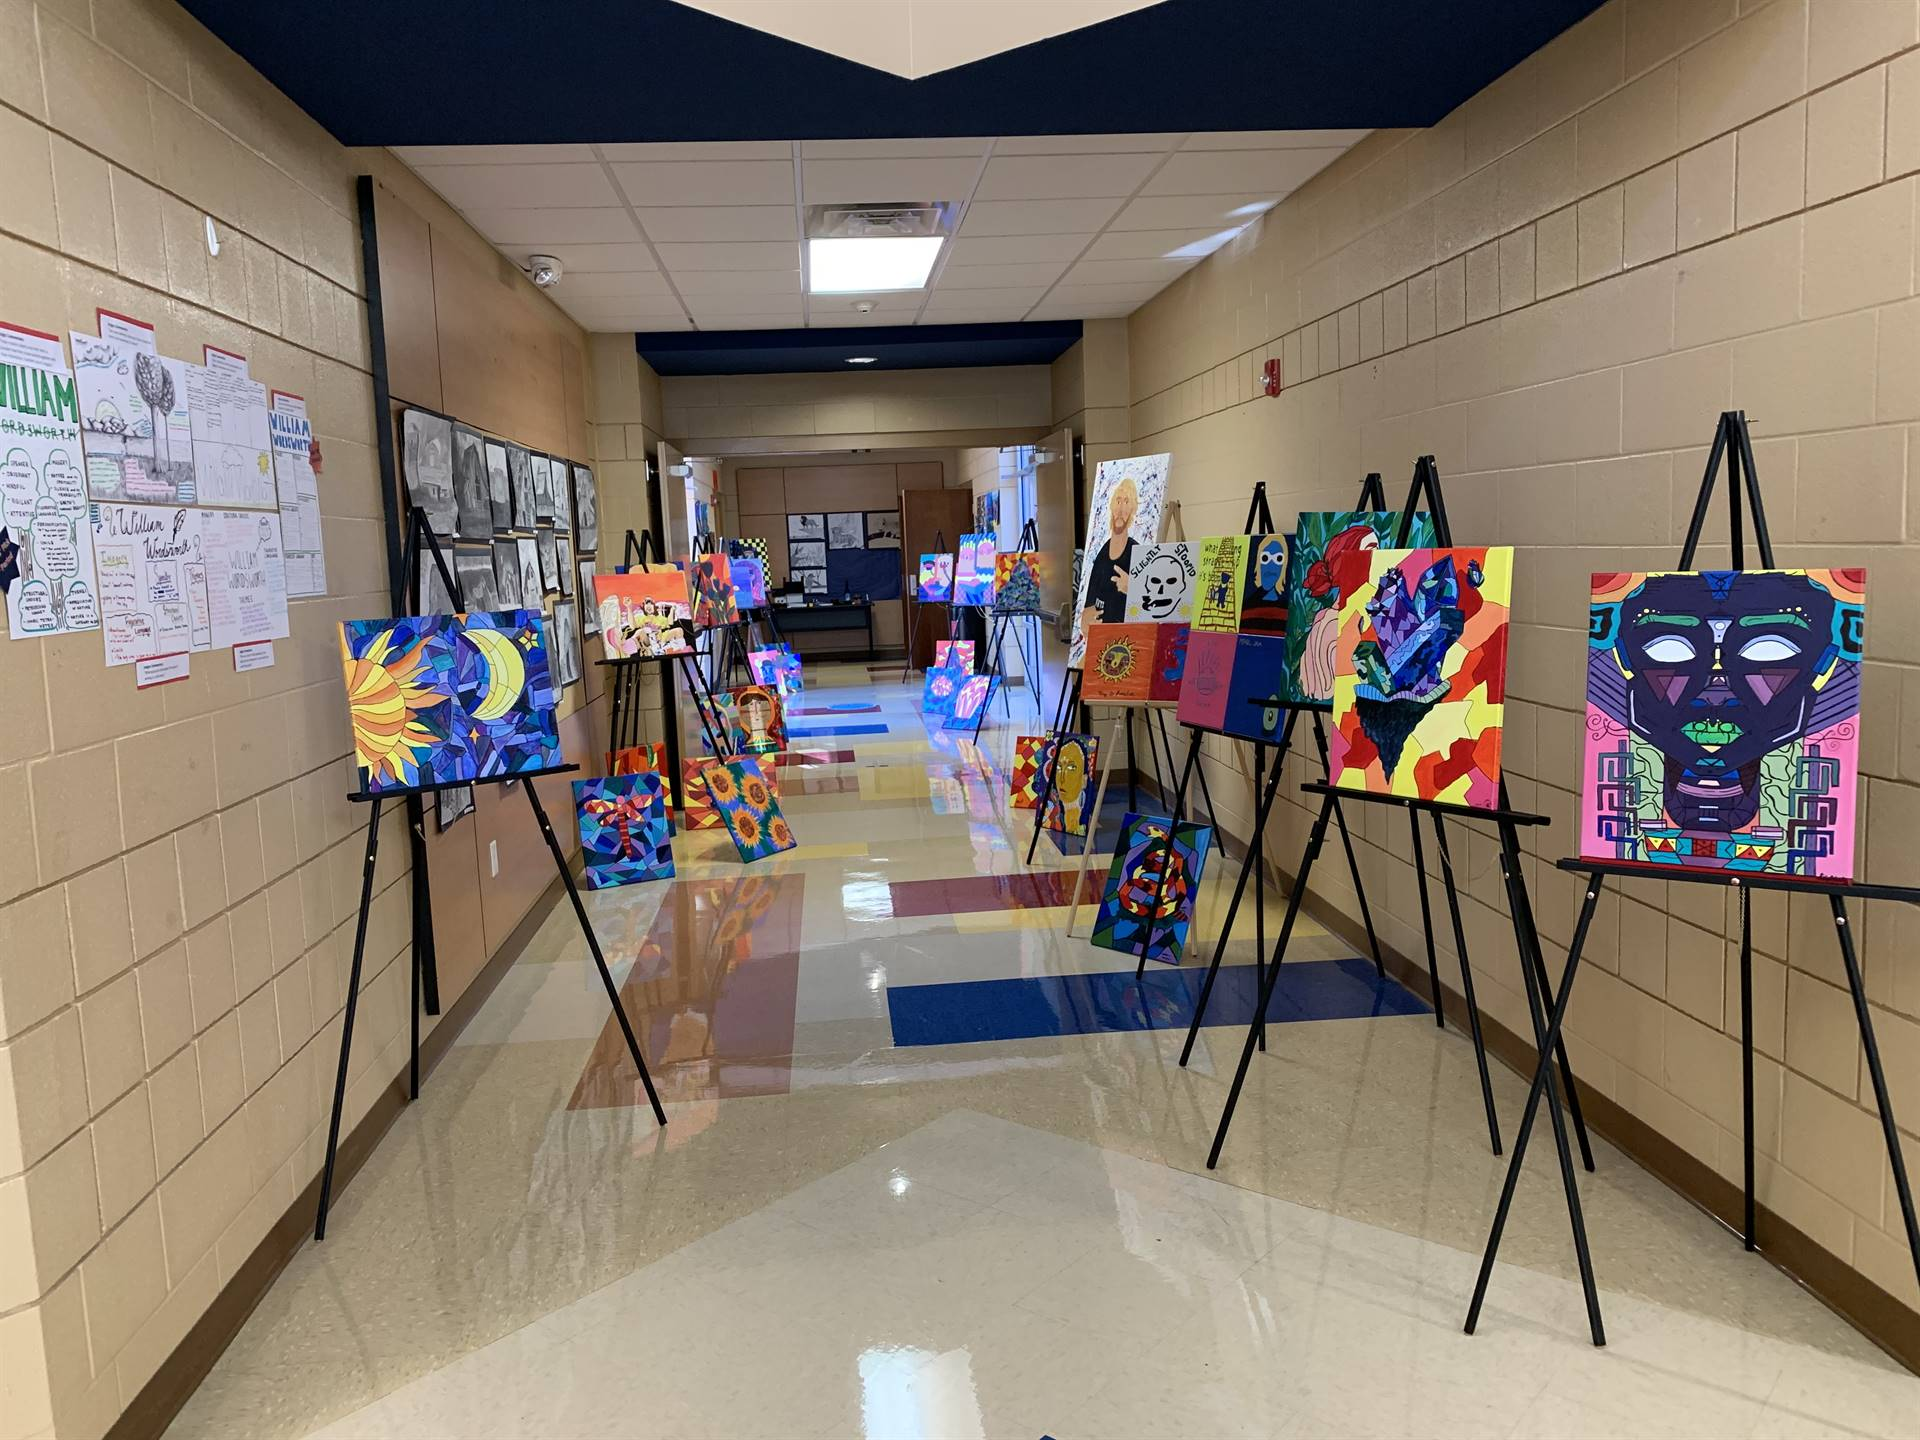 Student artwork in the hallway